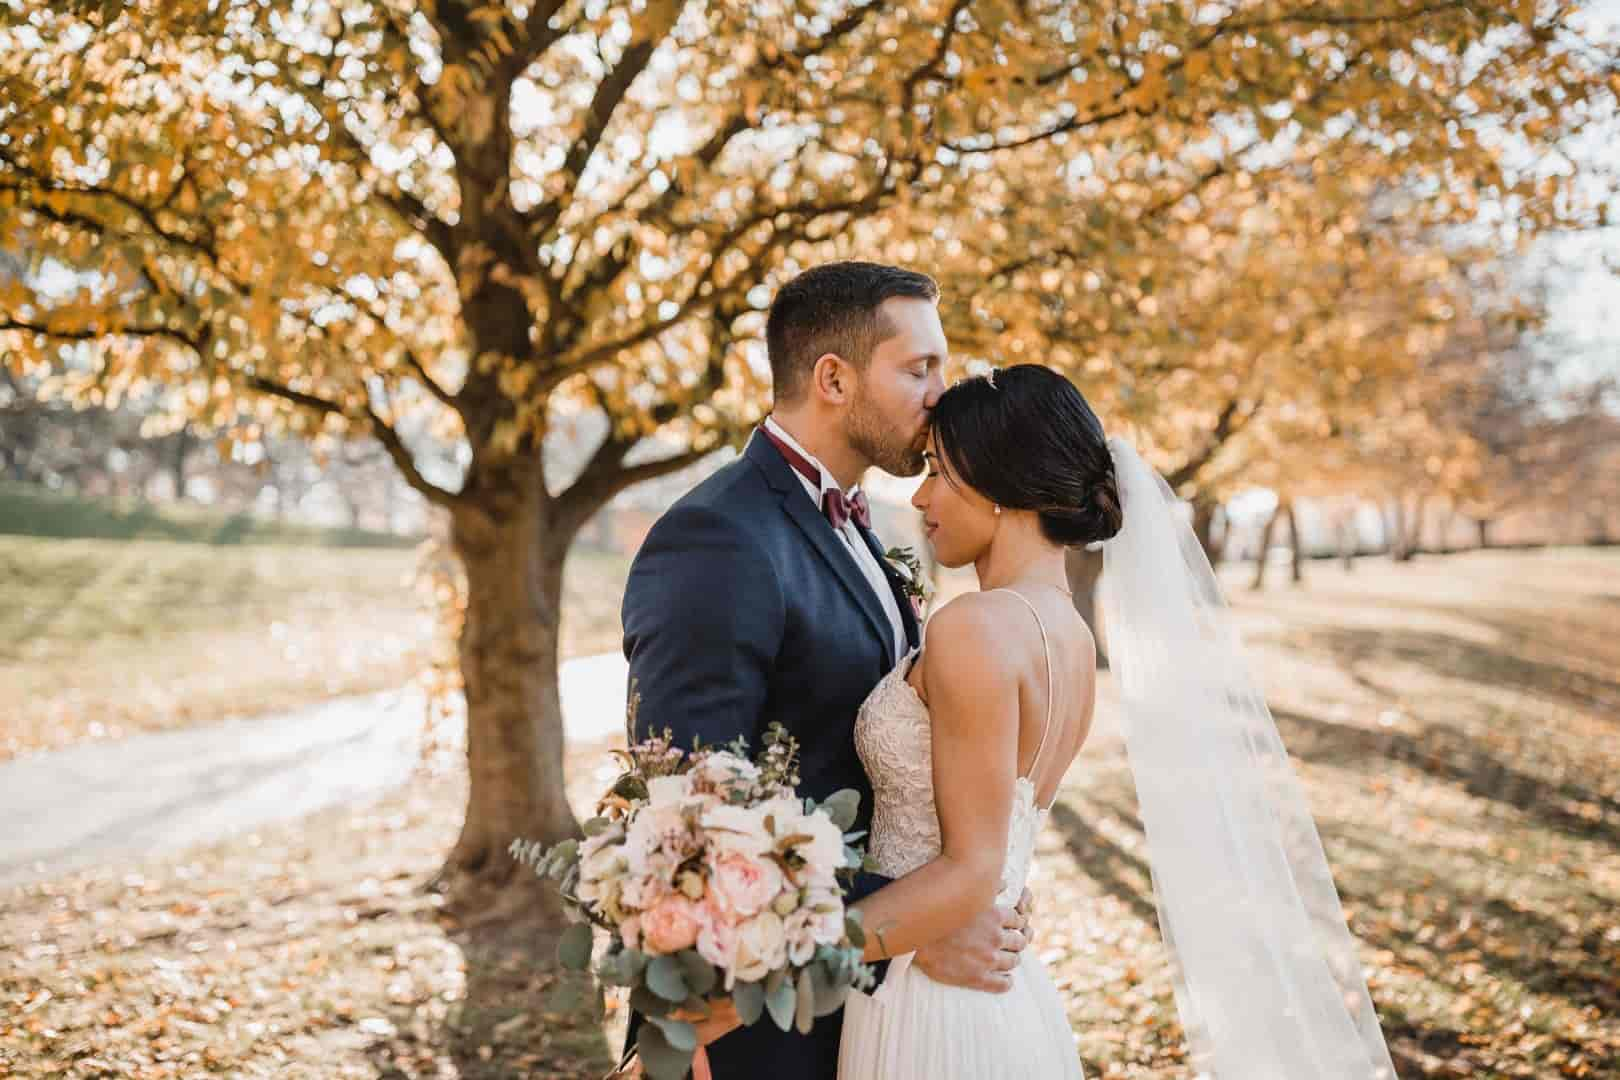 Wedding Planner Germany | Hochzeitsplaner Deutschland | Samira & Aleksandar | Persian-Croatian winter wedding